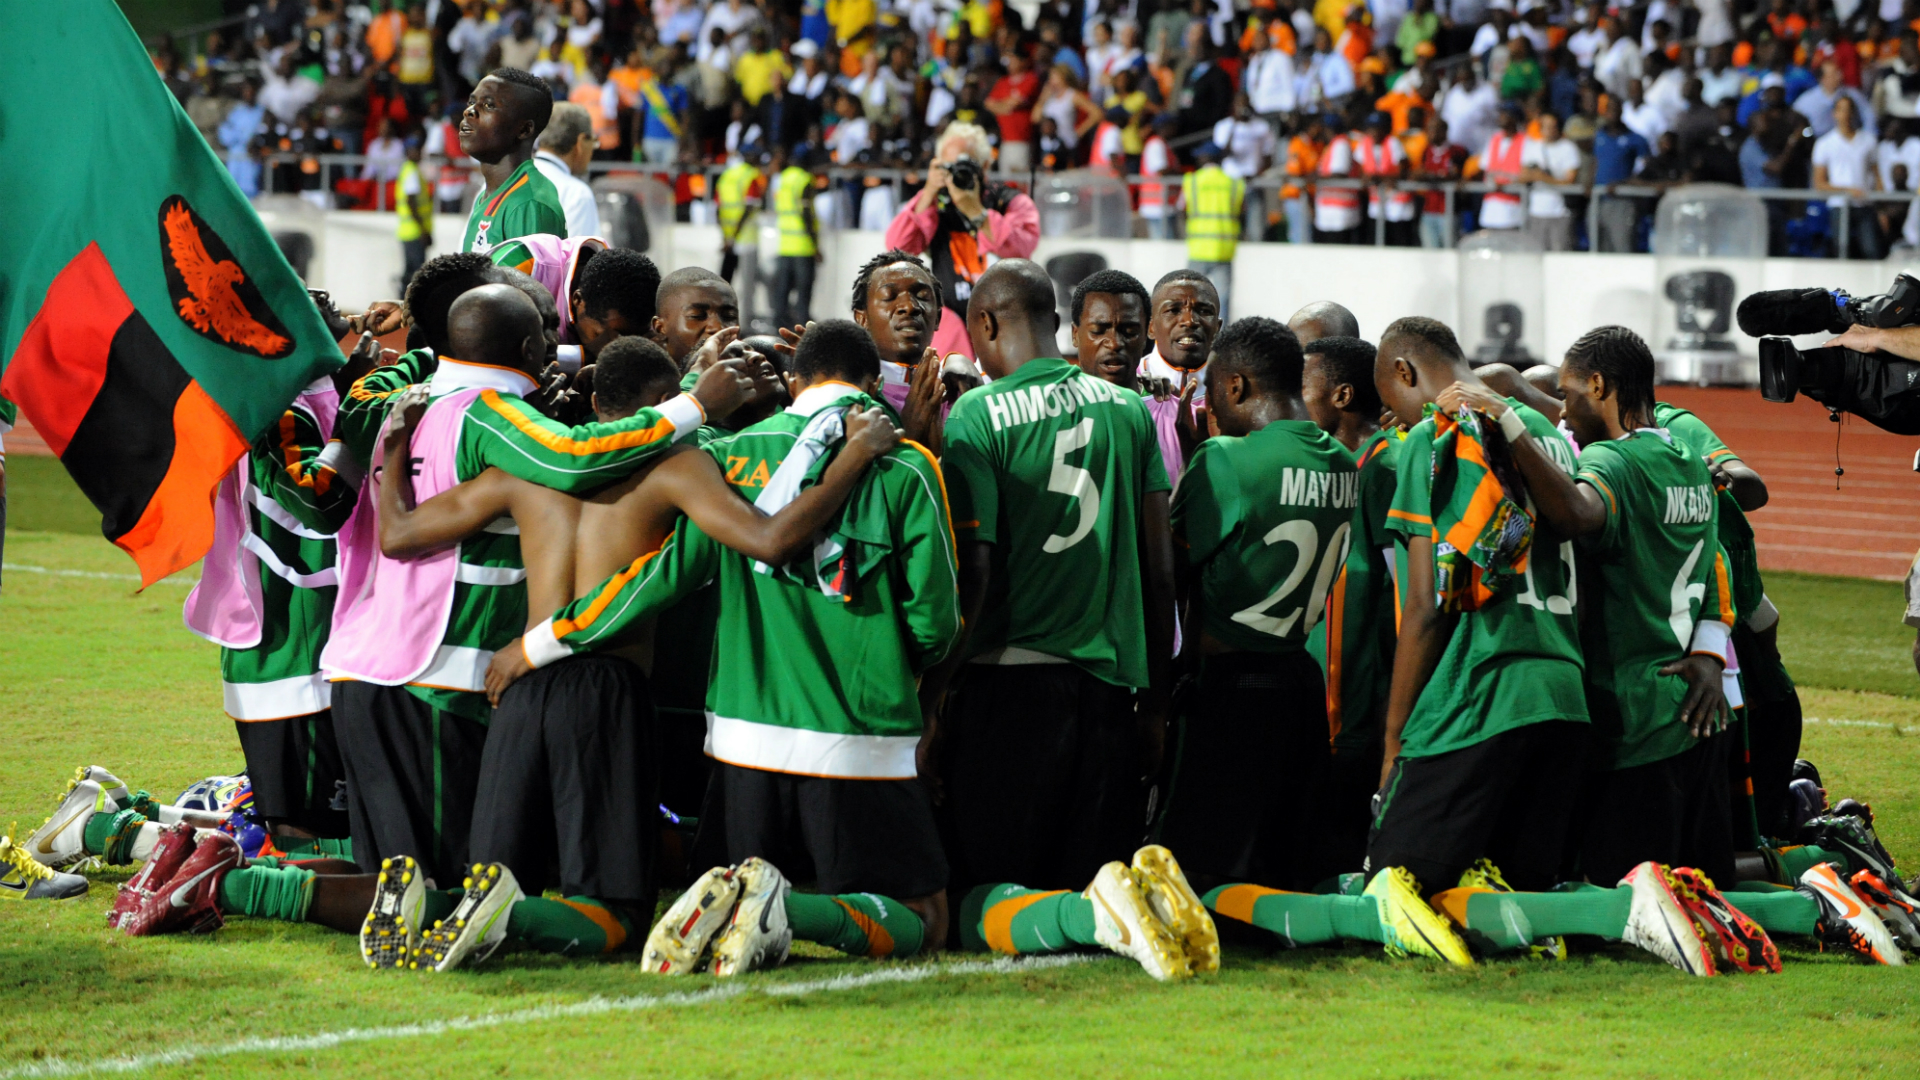 Zambia winning Africa Cup of Nations in 2012